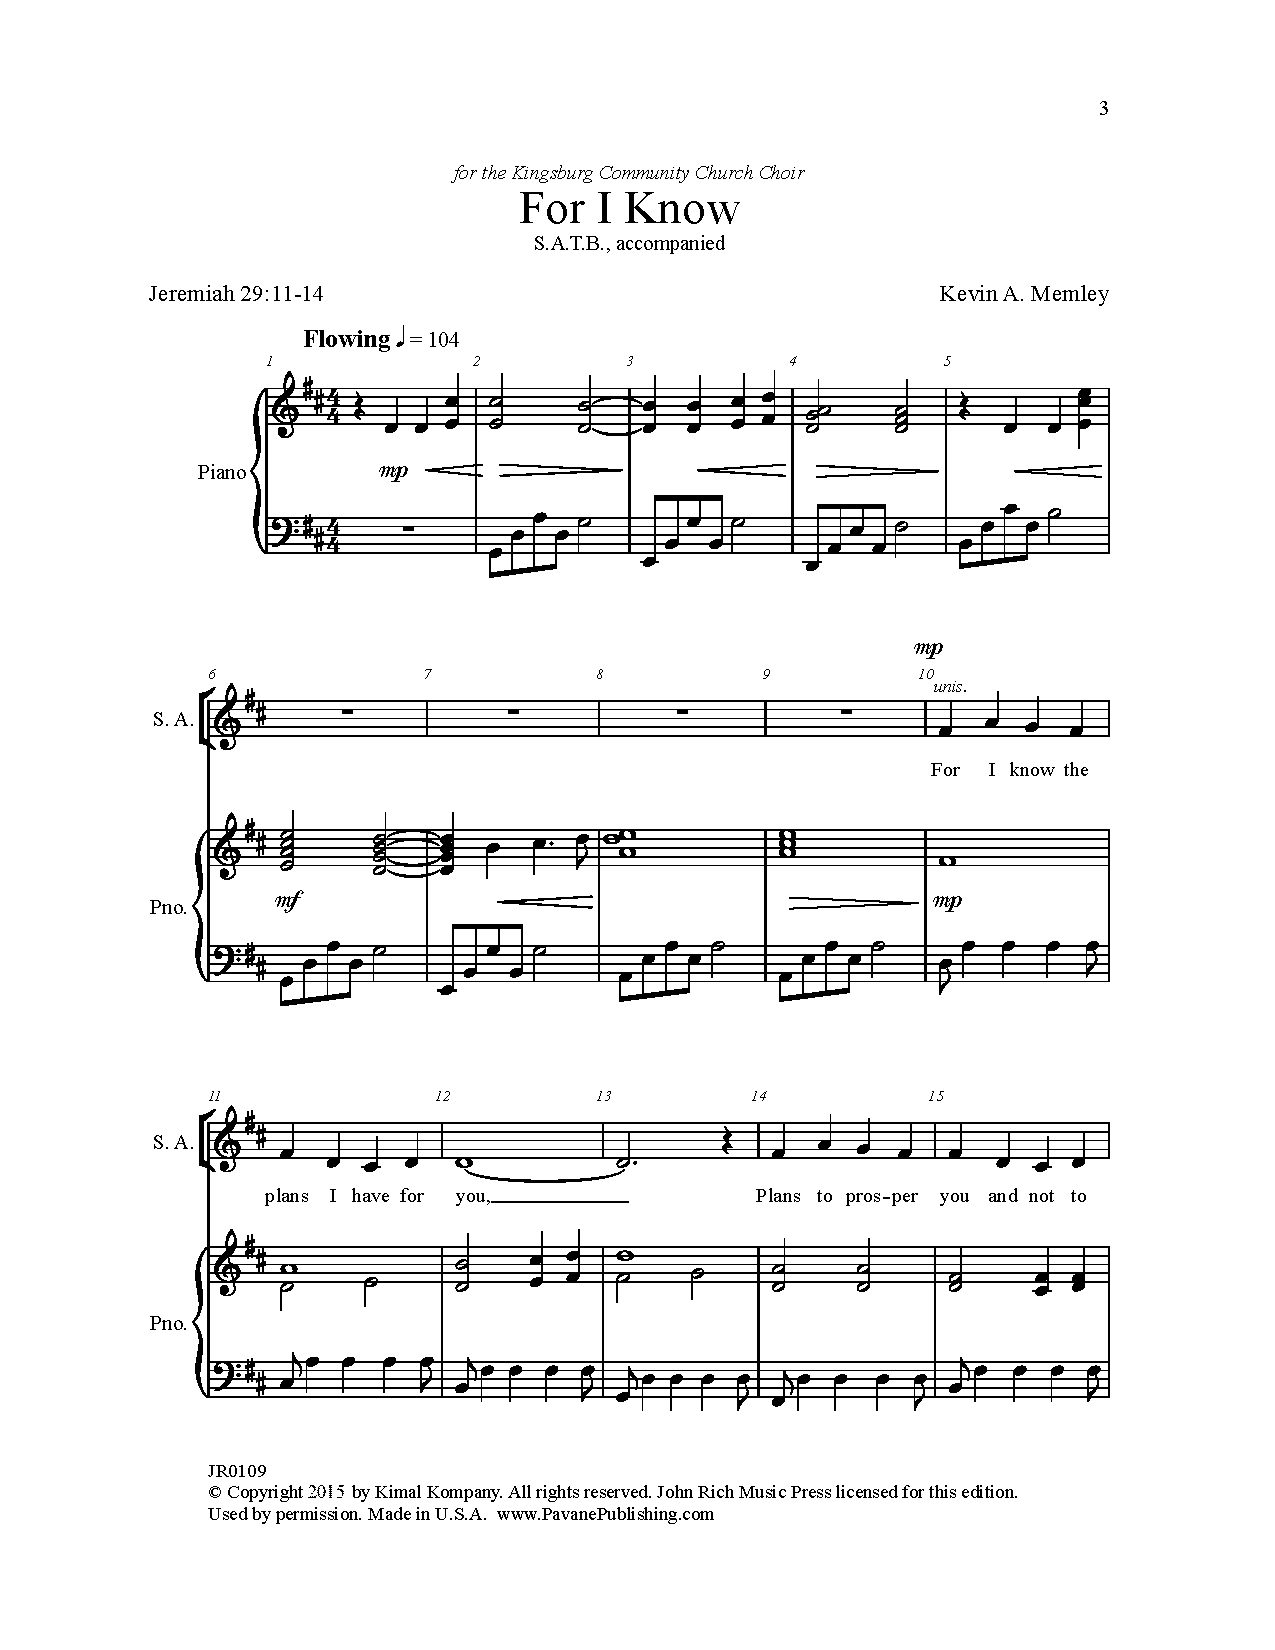 For I Know Sheet Music